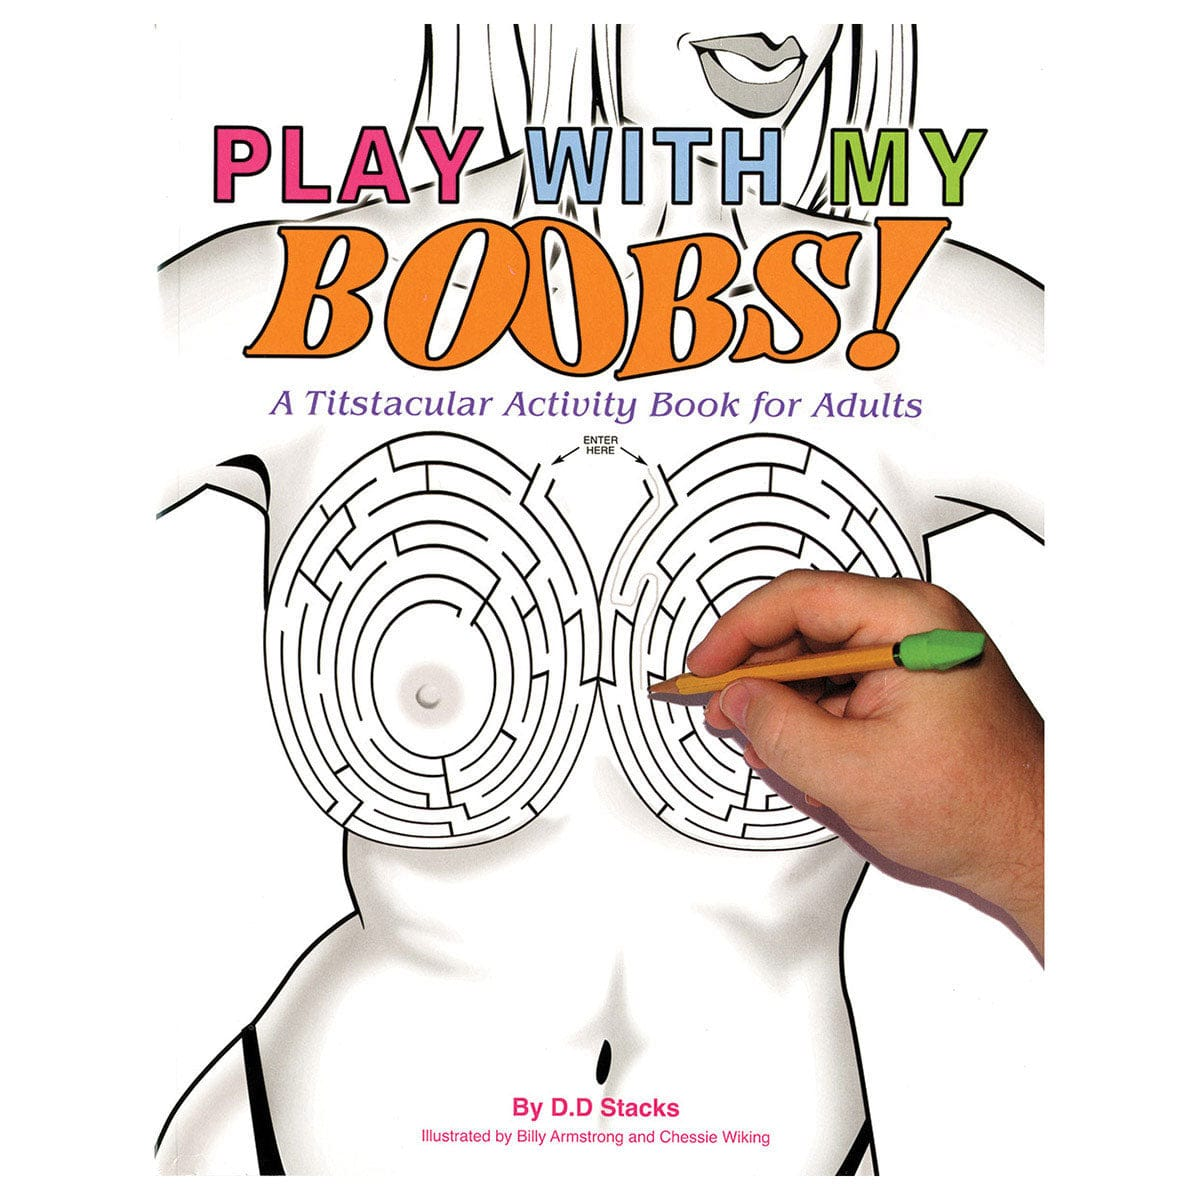 Play with My Boobs! A Titstacular Activity Book for Adults by Aaron Blake Publishers - rolik